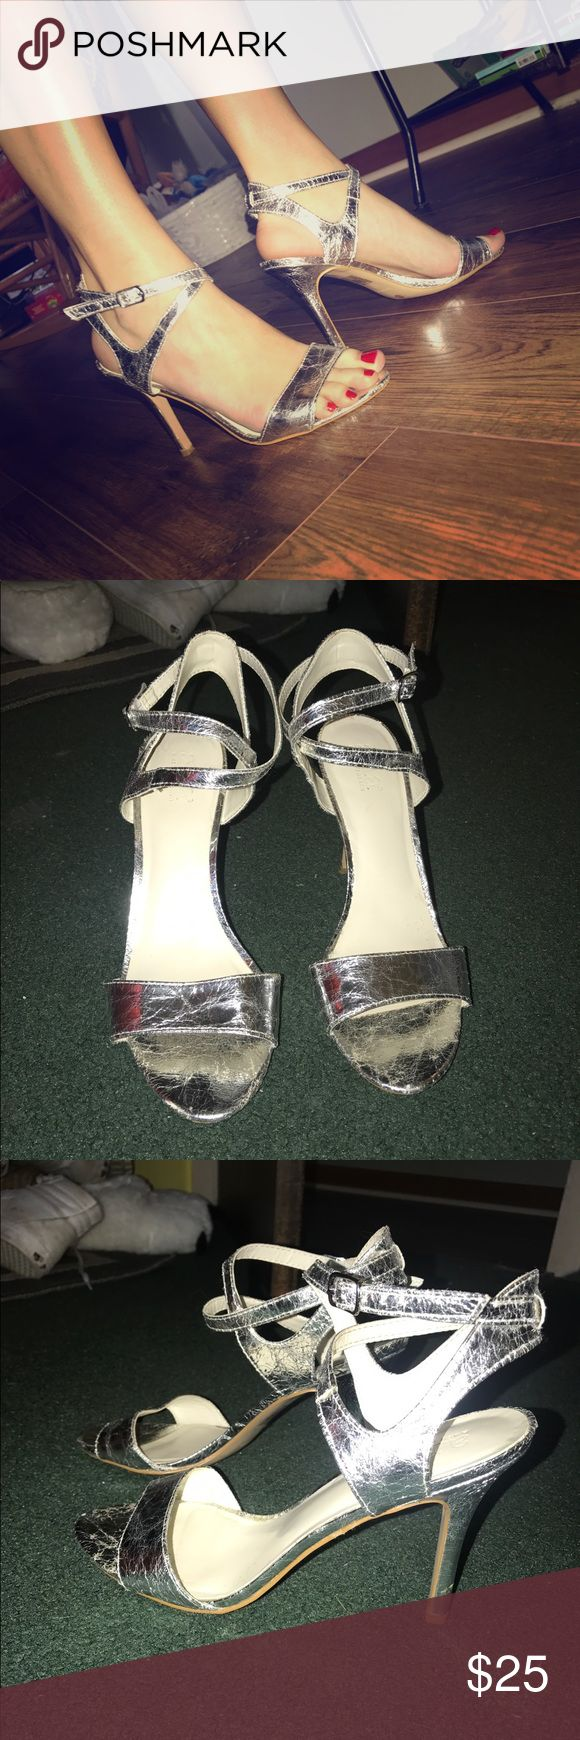 Silver Strappy Heels Textured, silver, strappy sandal-like heel. Worn to prom once, great condition! a.n.a Shoes Heels